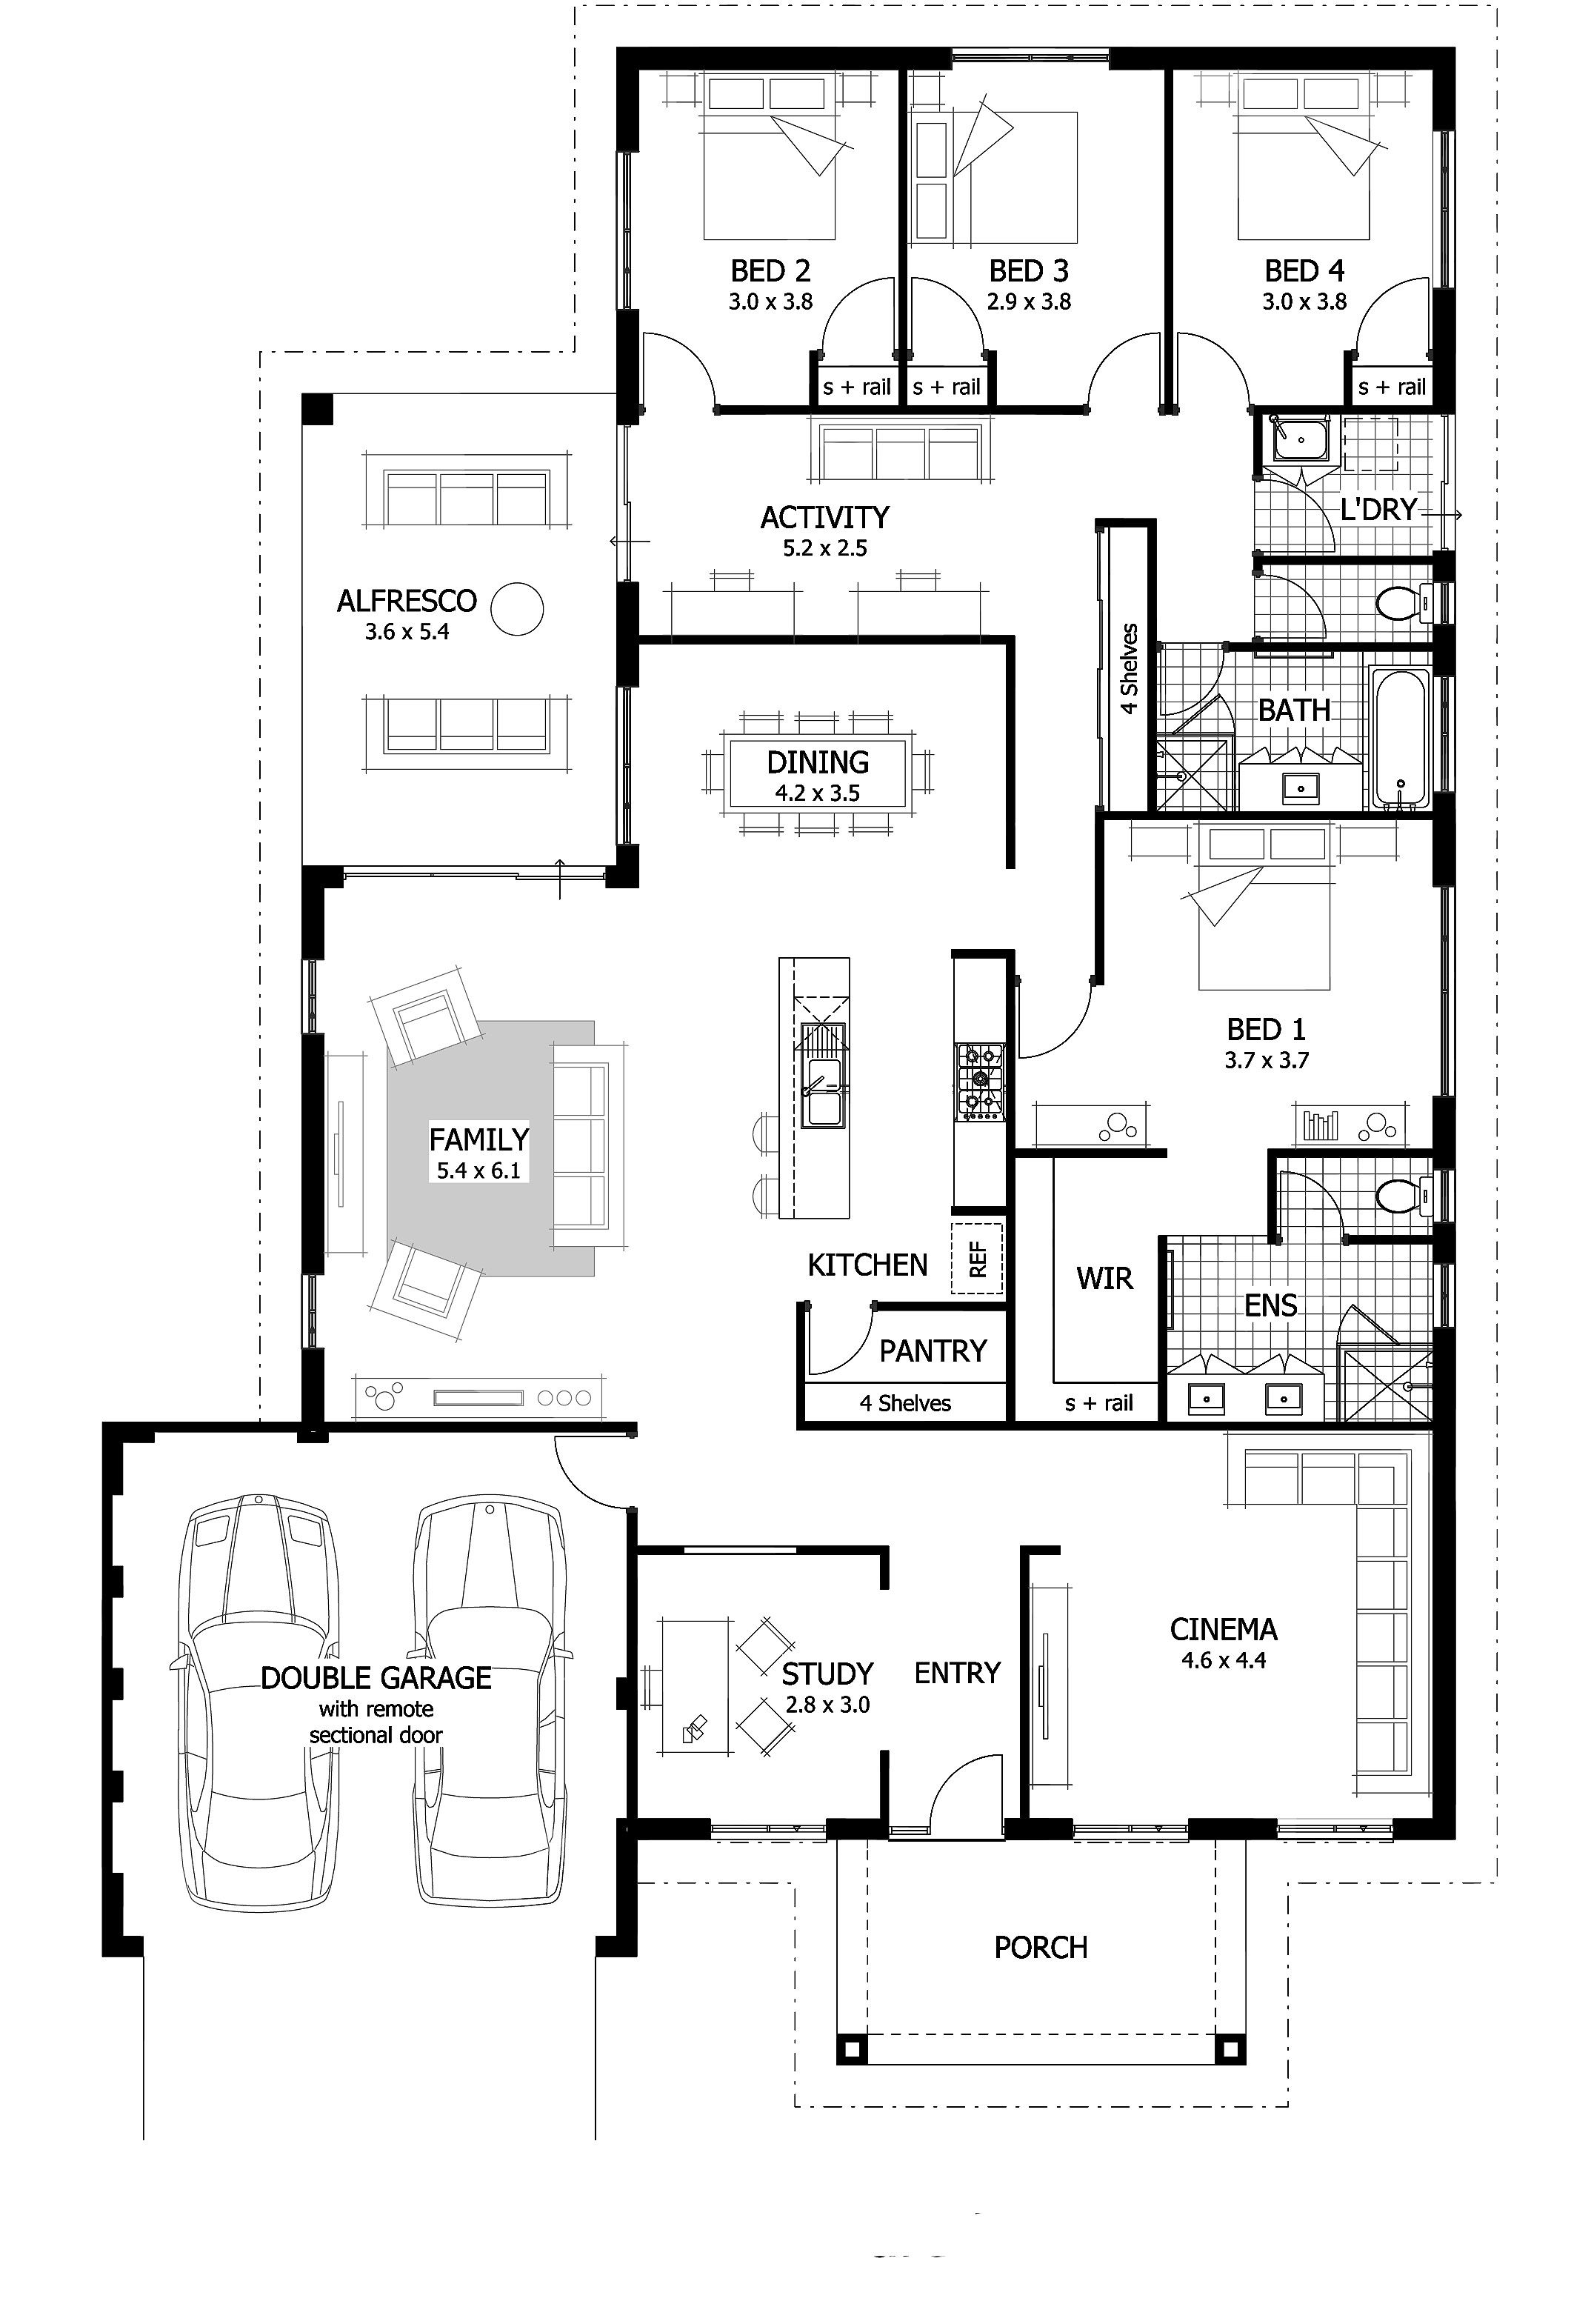 House Plans hi there! today i have this family home featuring a study, home